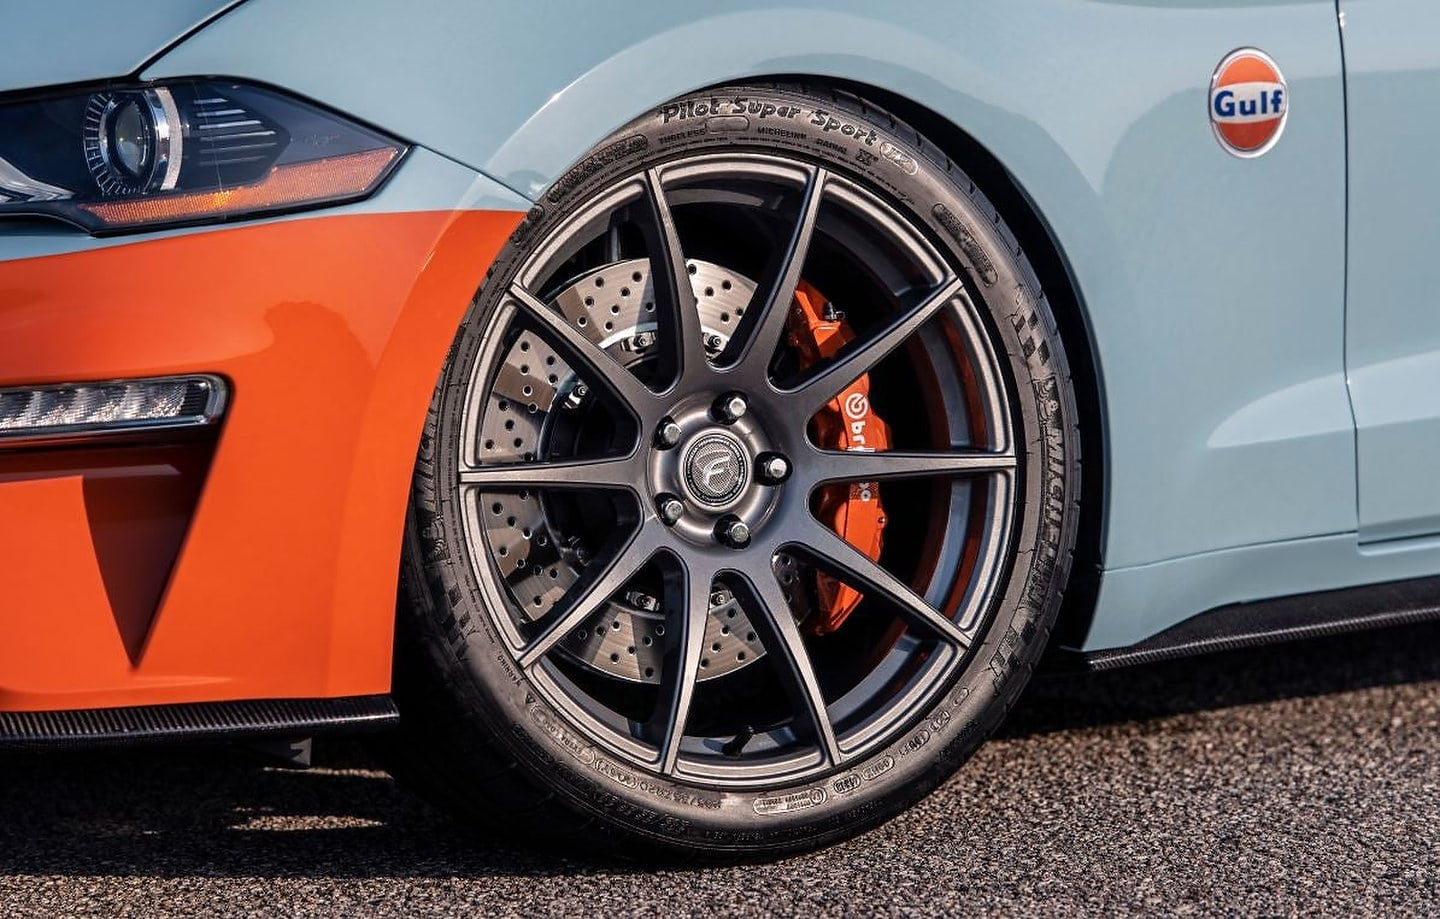 2019 Gulf Heritage Edition Ford Mustang by Brown Lee Performance